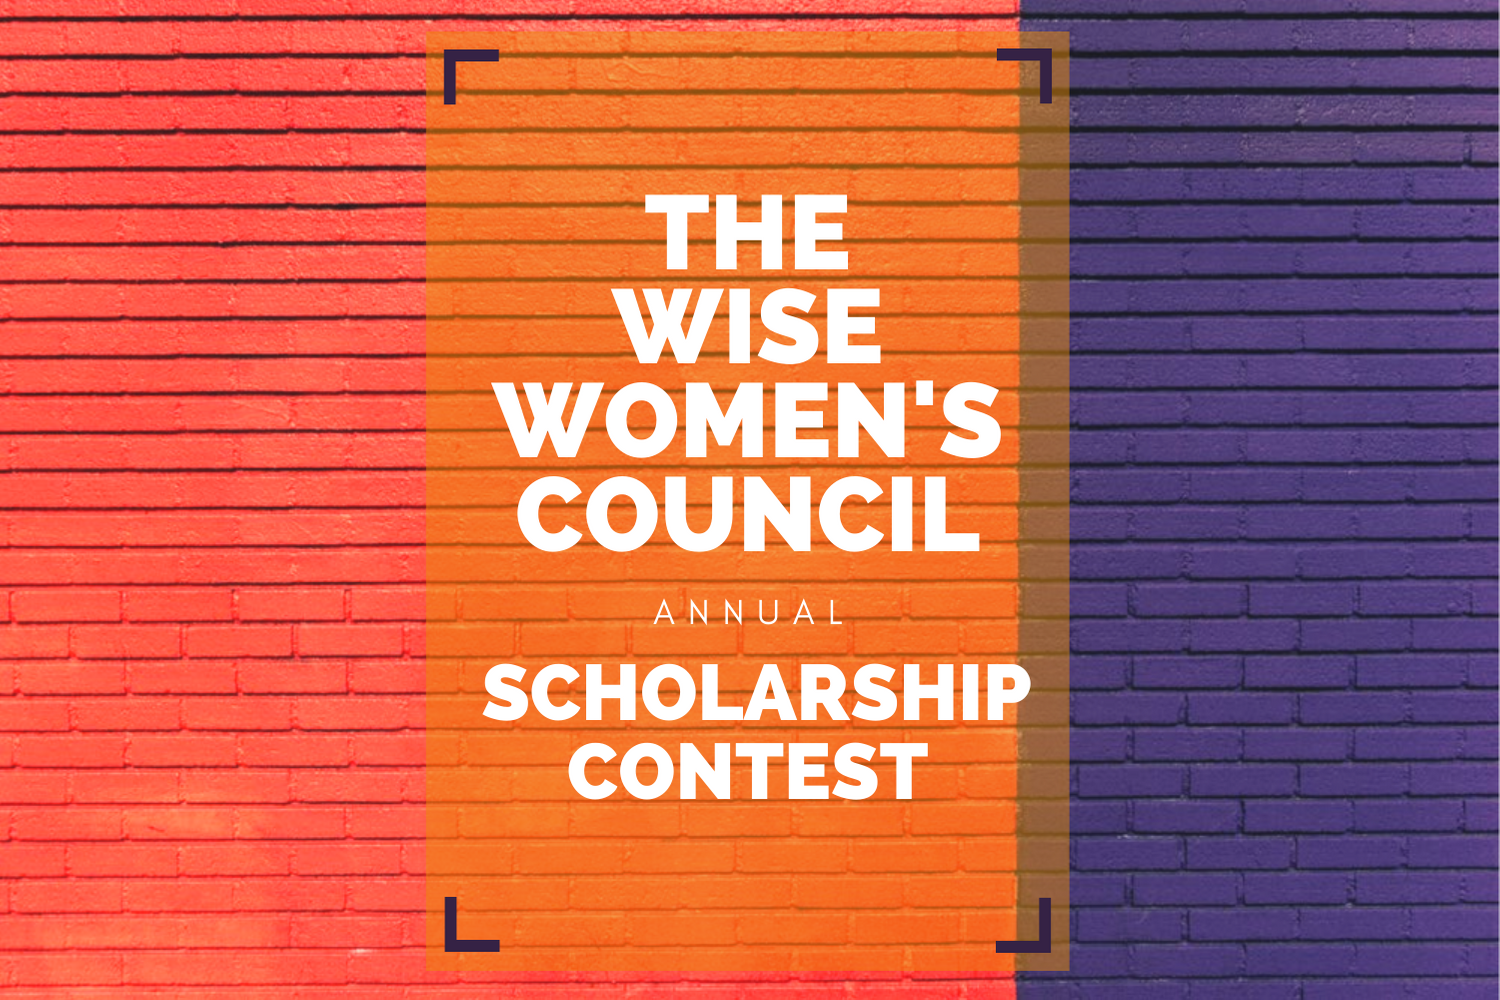 The Wise Women's Council 2021 Scholarship Contest